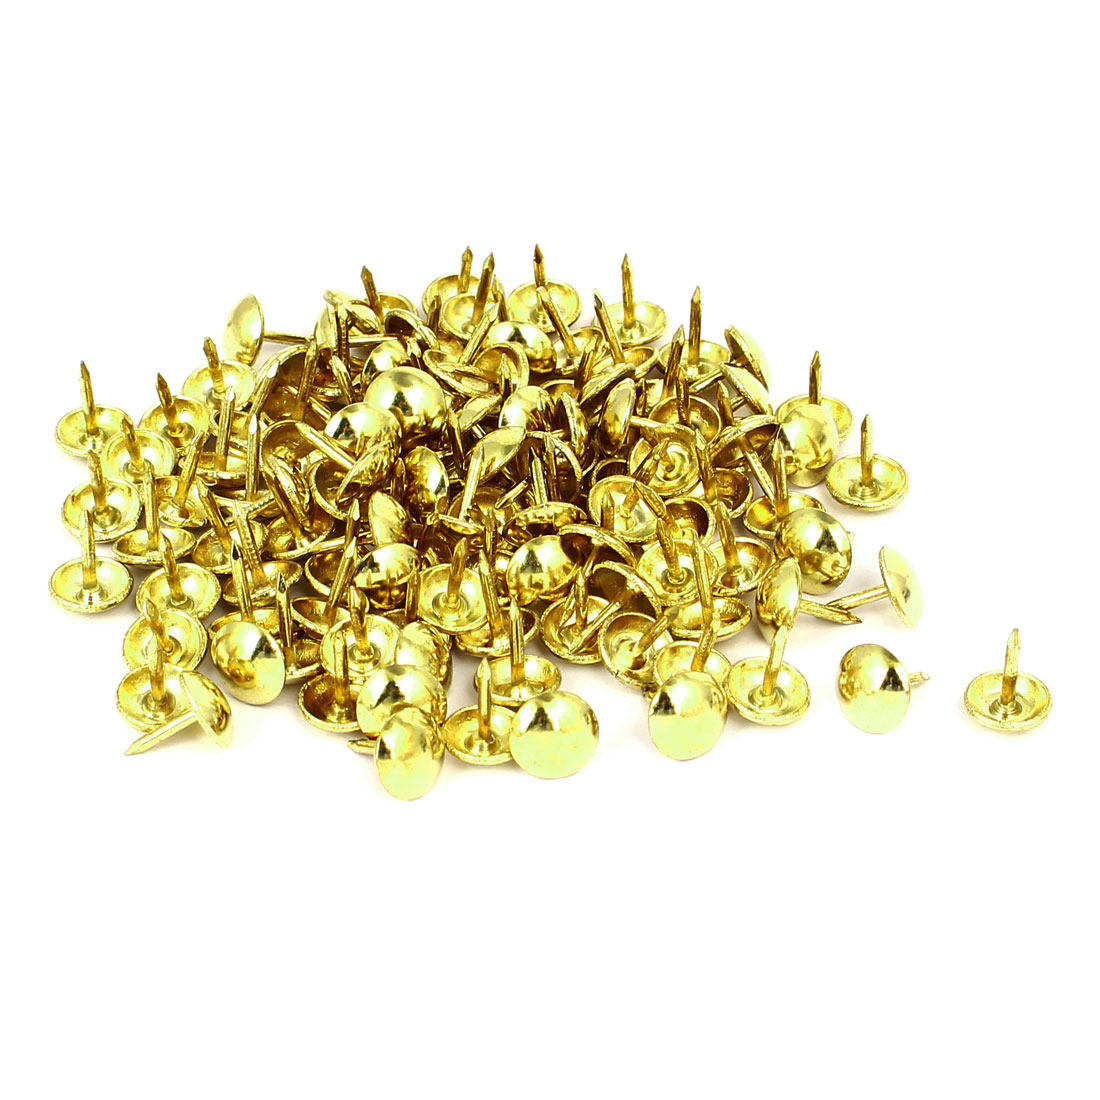 Home Furniture Upholstery Thumb Tack Nail Push Pin Gold Tone 9mm x 11mm 120pcs